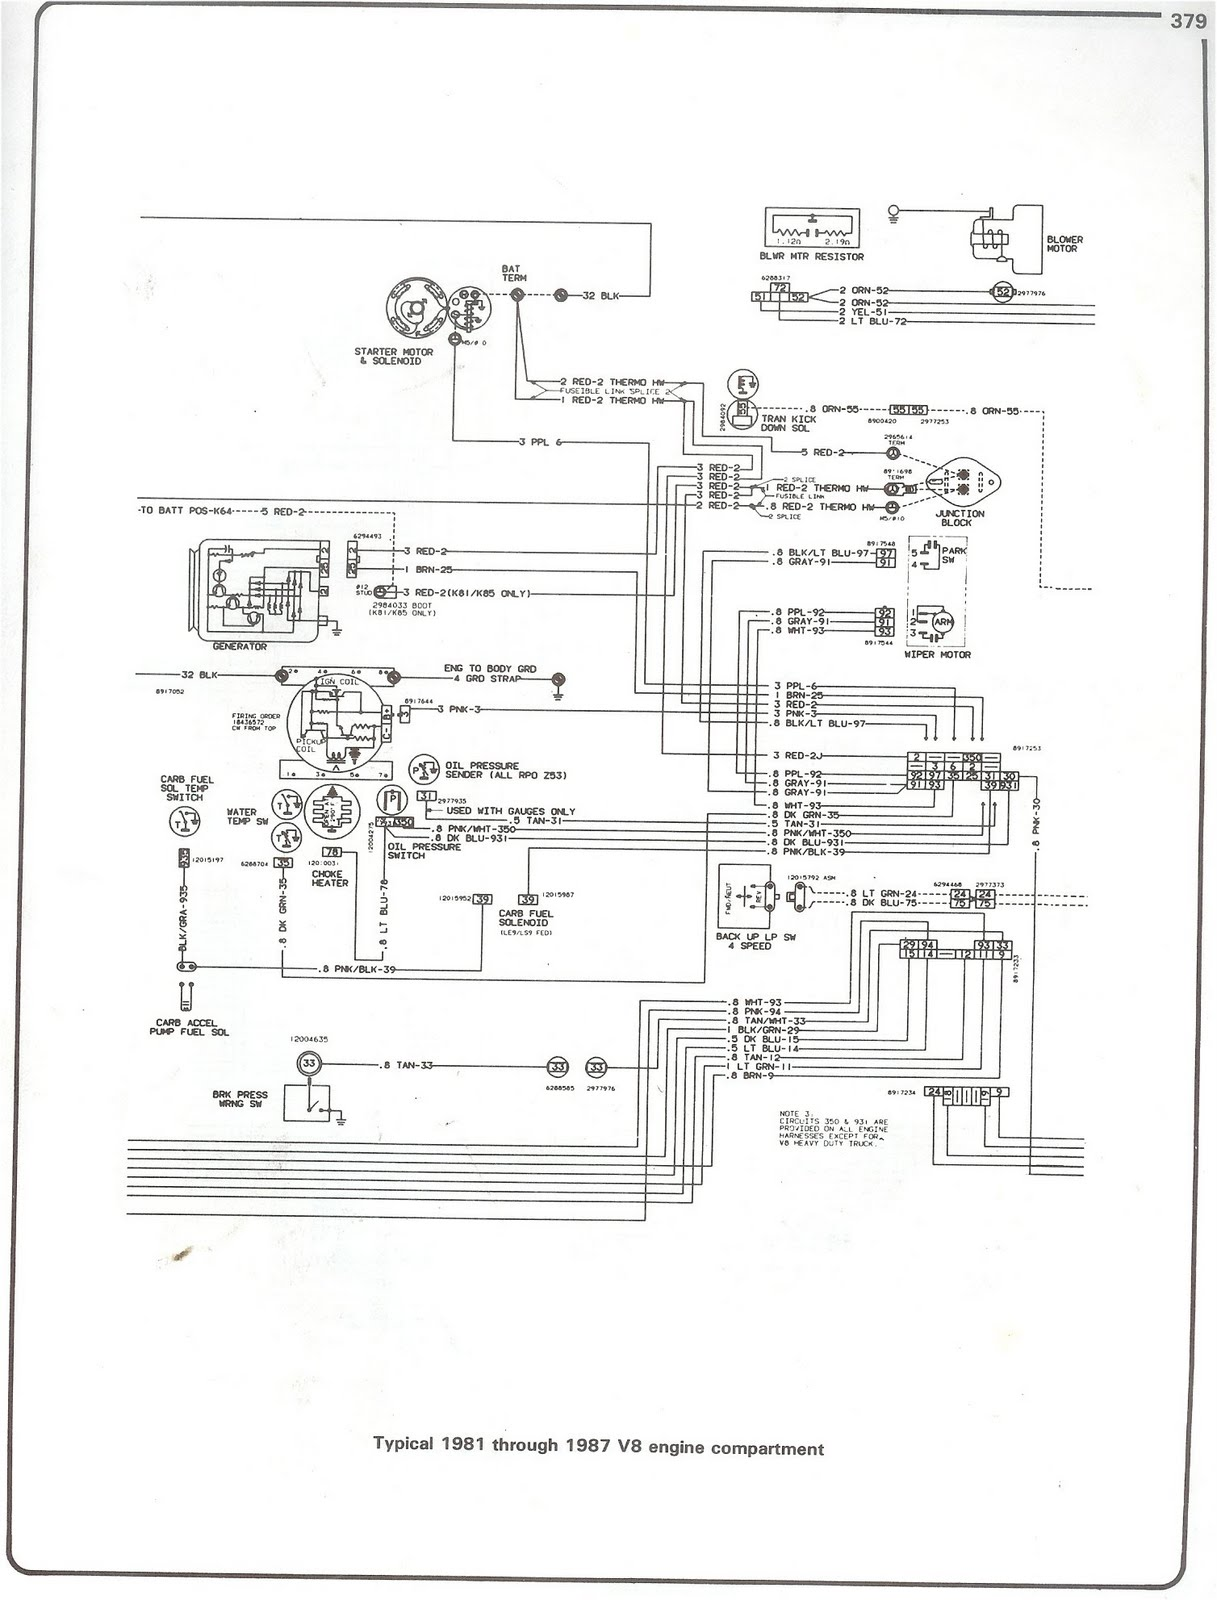 81 87_chevy_truck_V8_engine repair manuals toyota pickup 1981 wiring diagrams readingrat net 1982 chevy truck engine wiring diagram at reclaimingppi.co